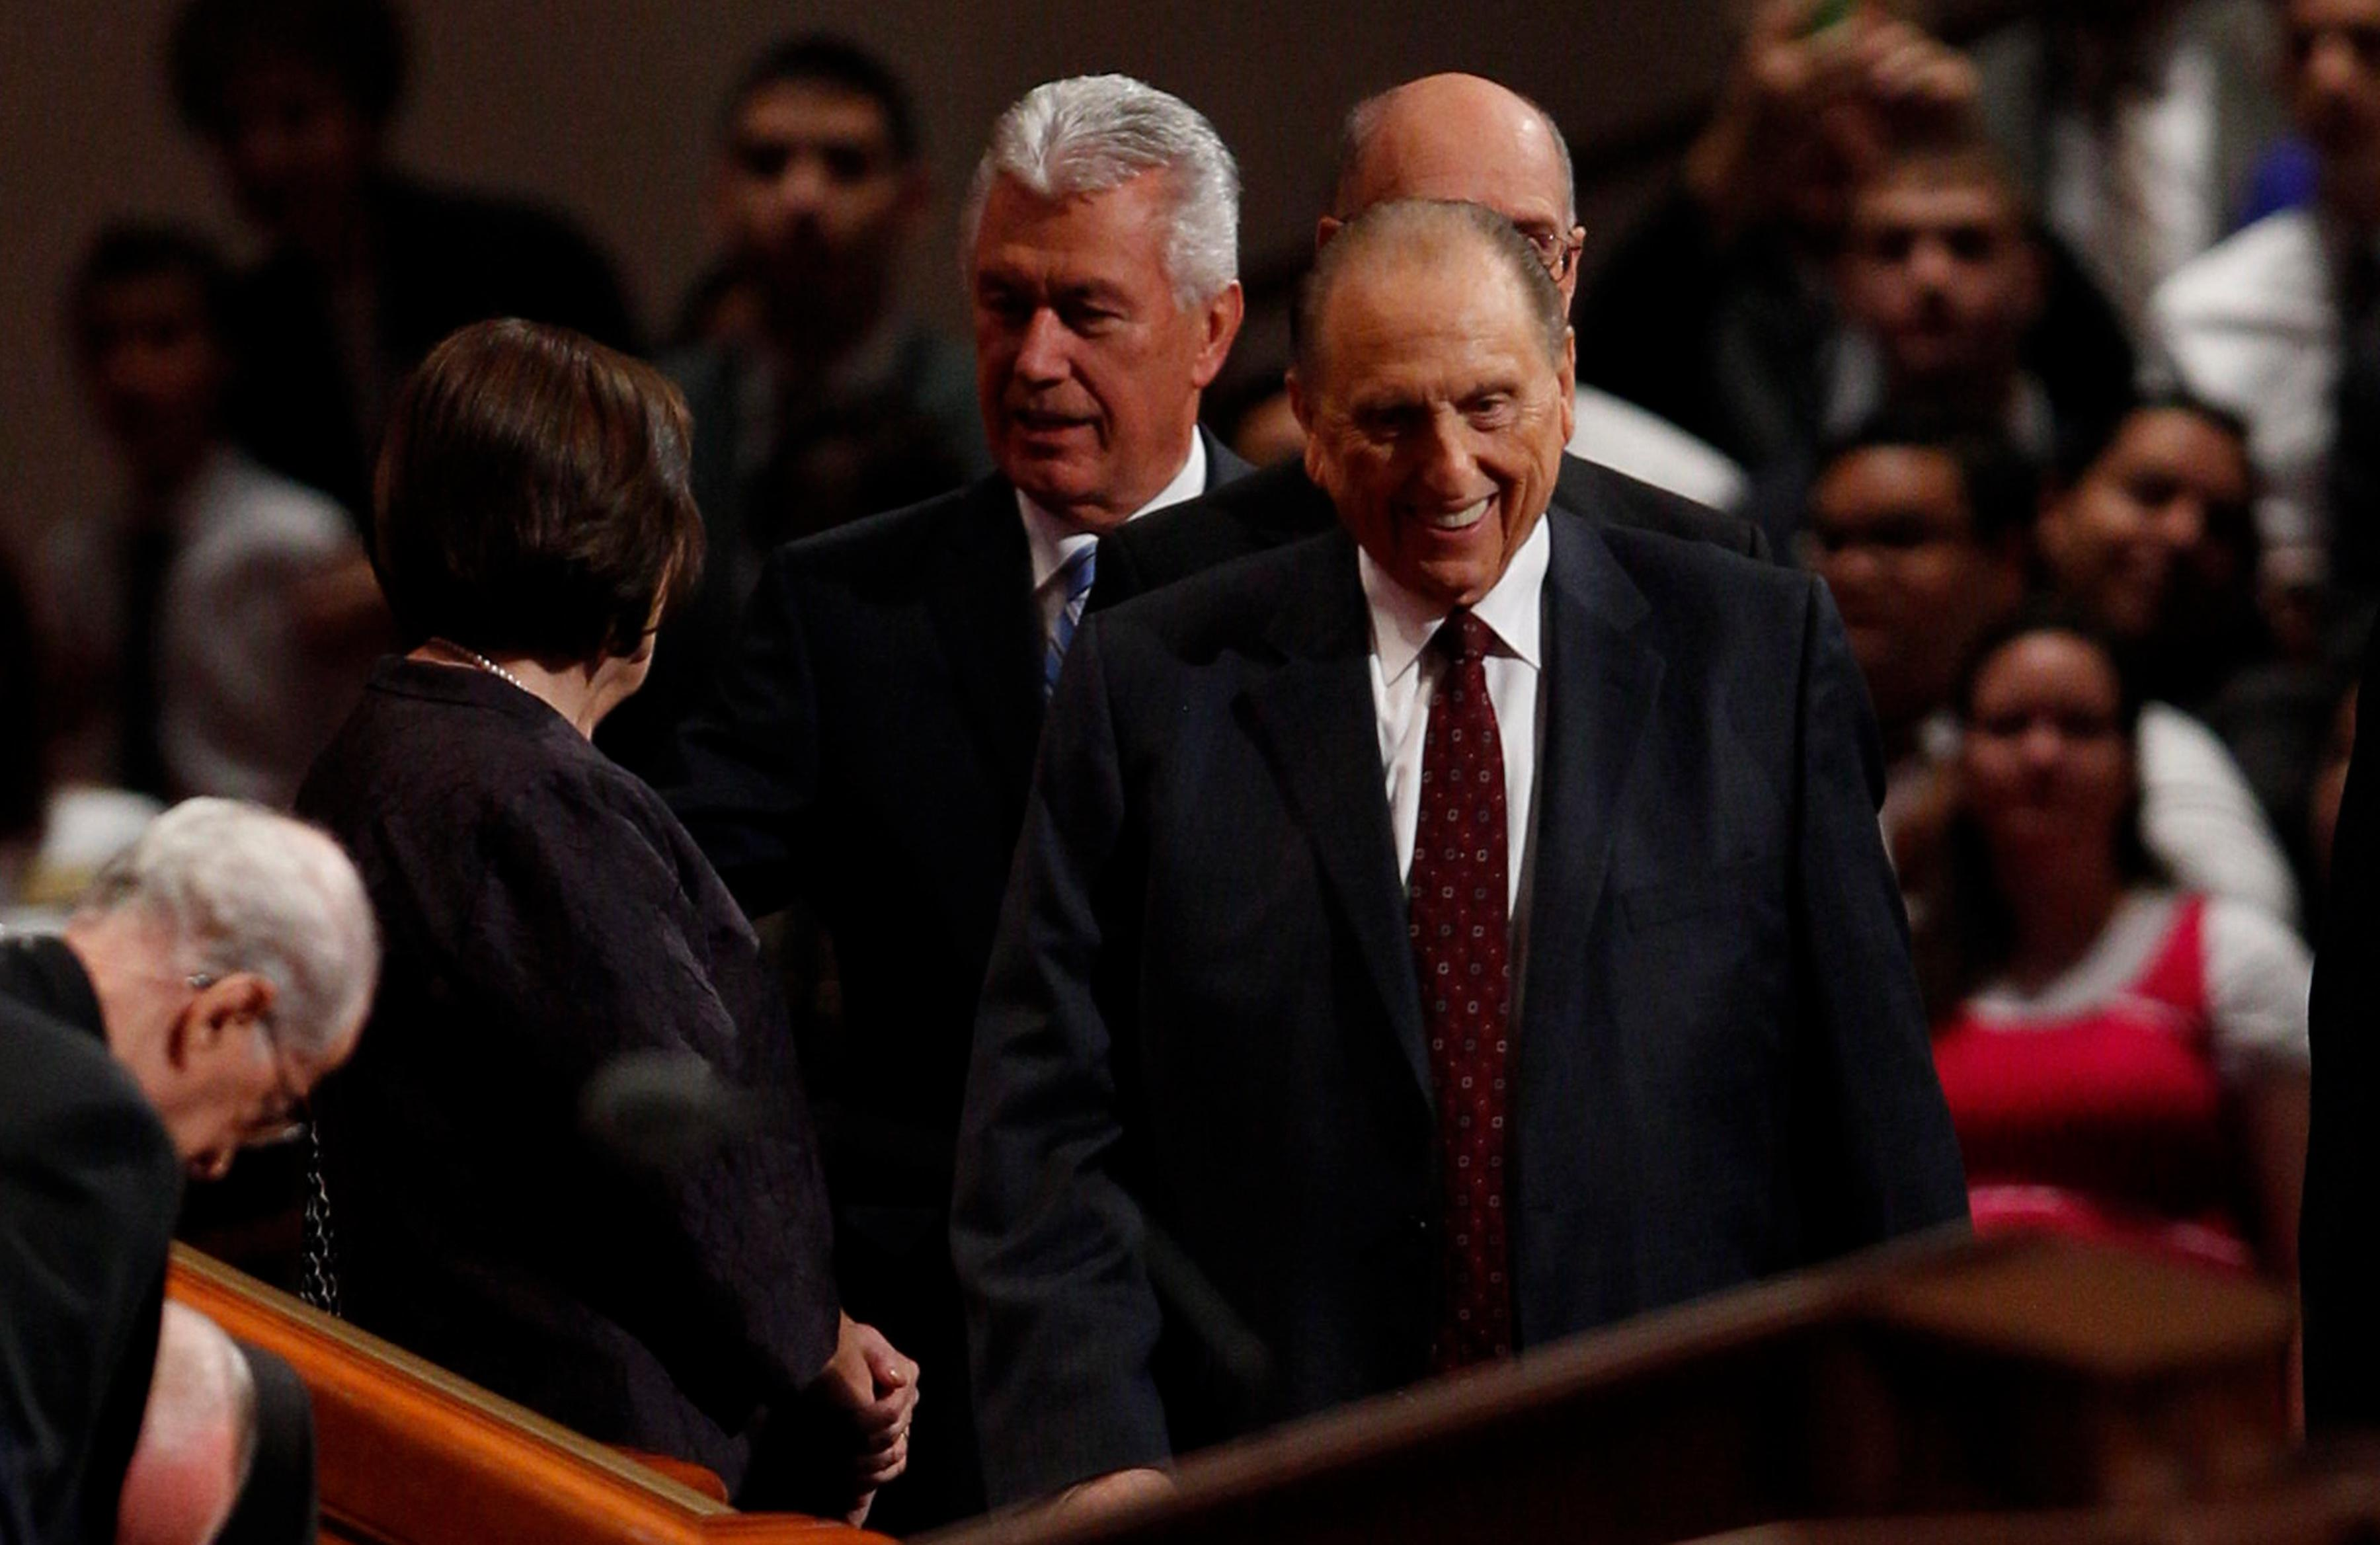 President Thomas S. Monson smiles as he enters the Conference Center prior to the start of the Saturday morning session of general conference, October 5, 2013.{&amp;nbsp;}(Photo: MormonNewsroom.org)<p></p>